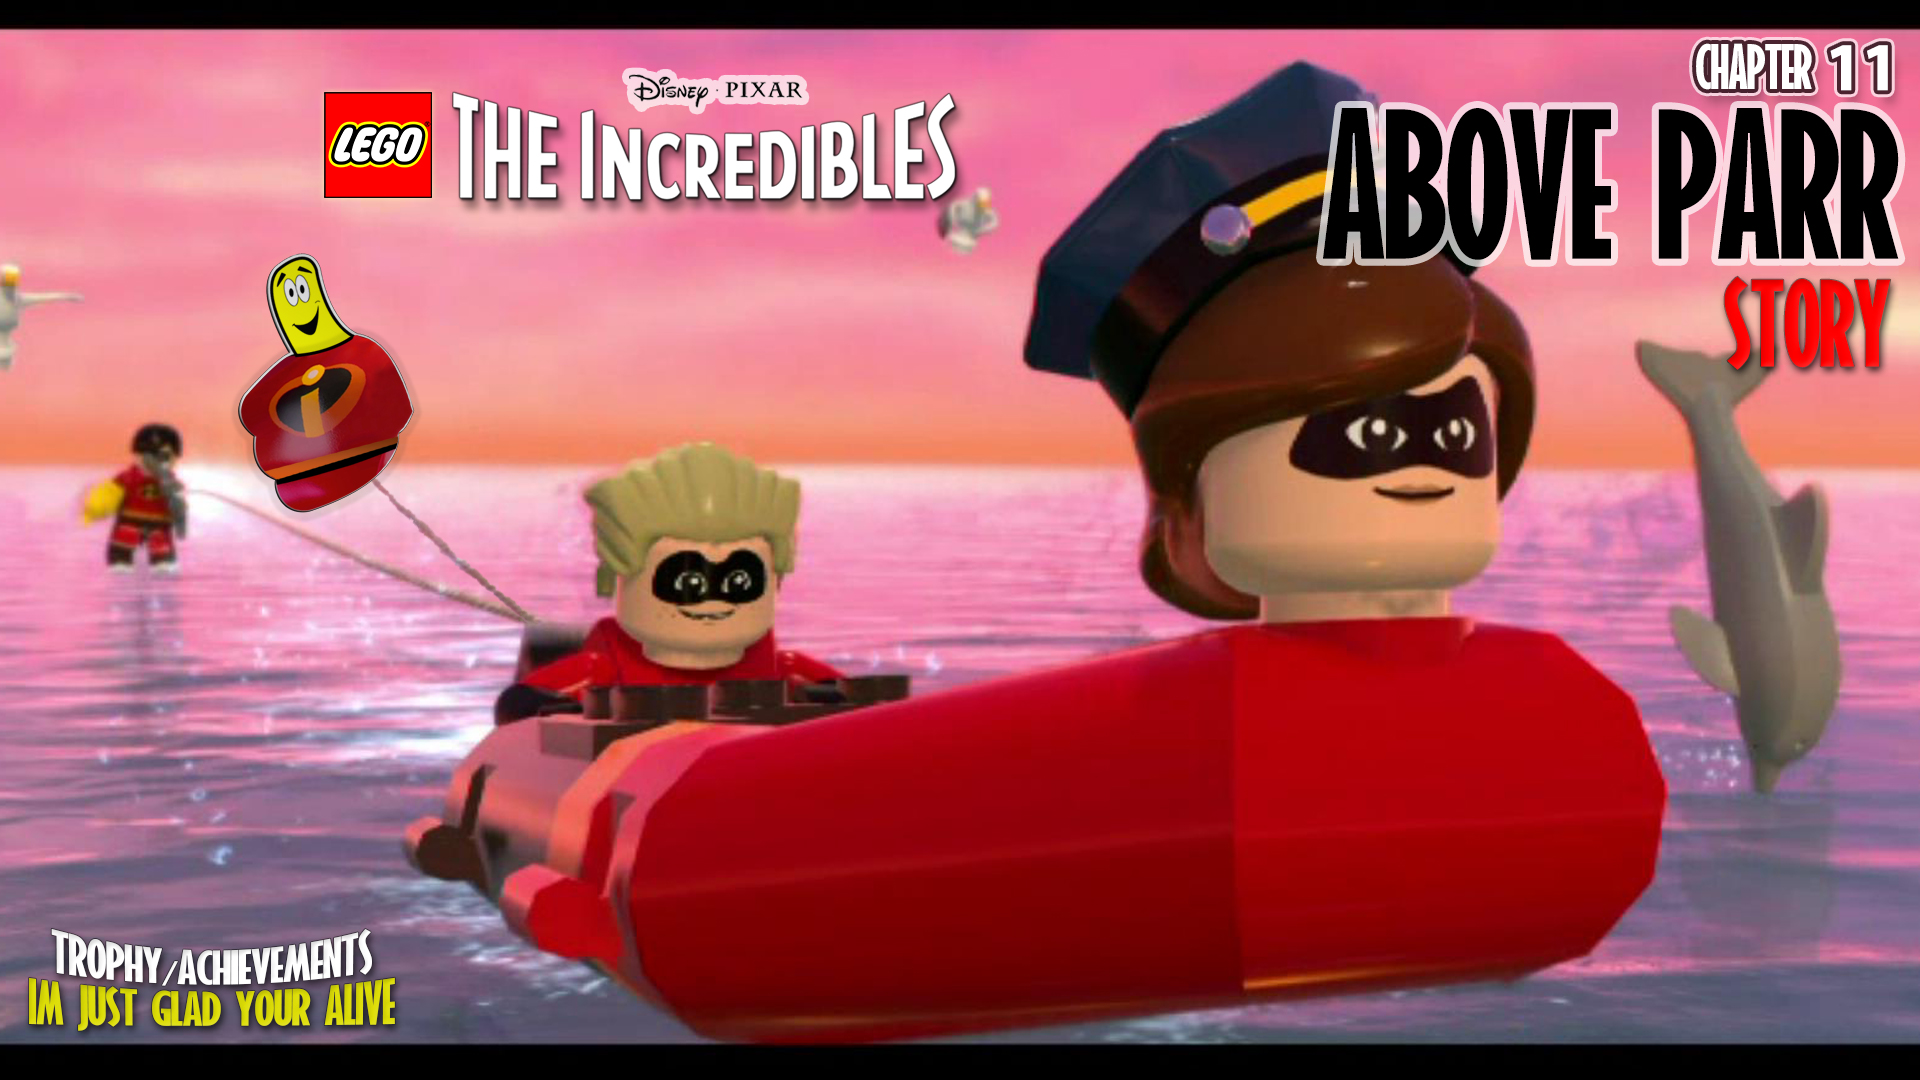 Lego The Incredibles: Chapter 11 / Above Parr STORY – HTG